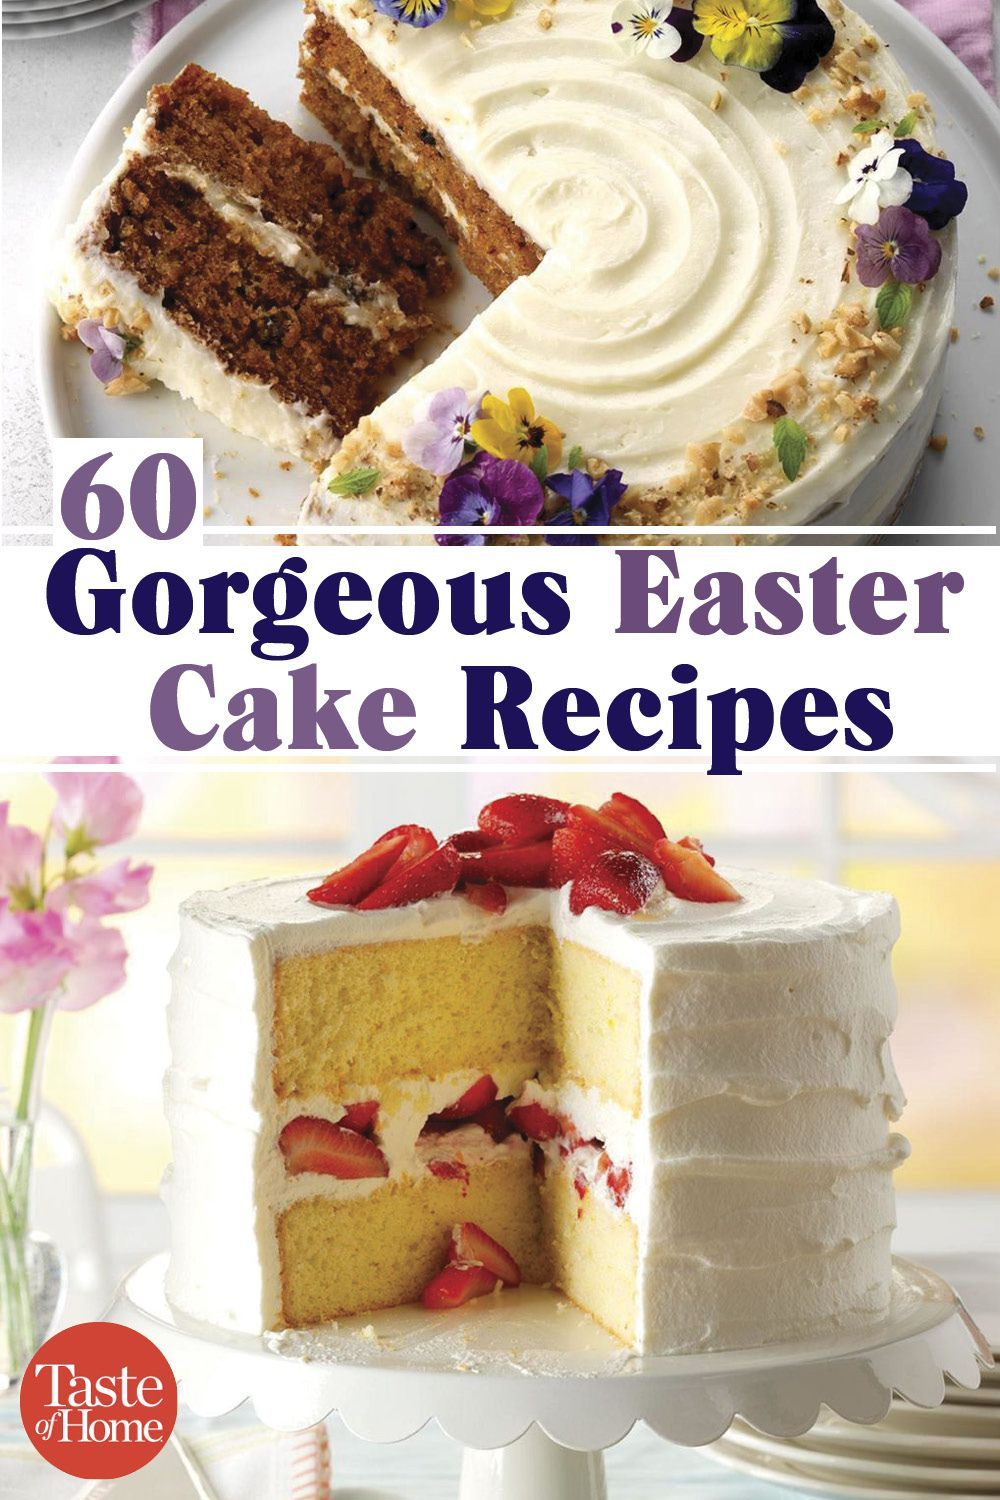 60 Gorgeous Easter Cake Recipes